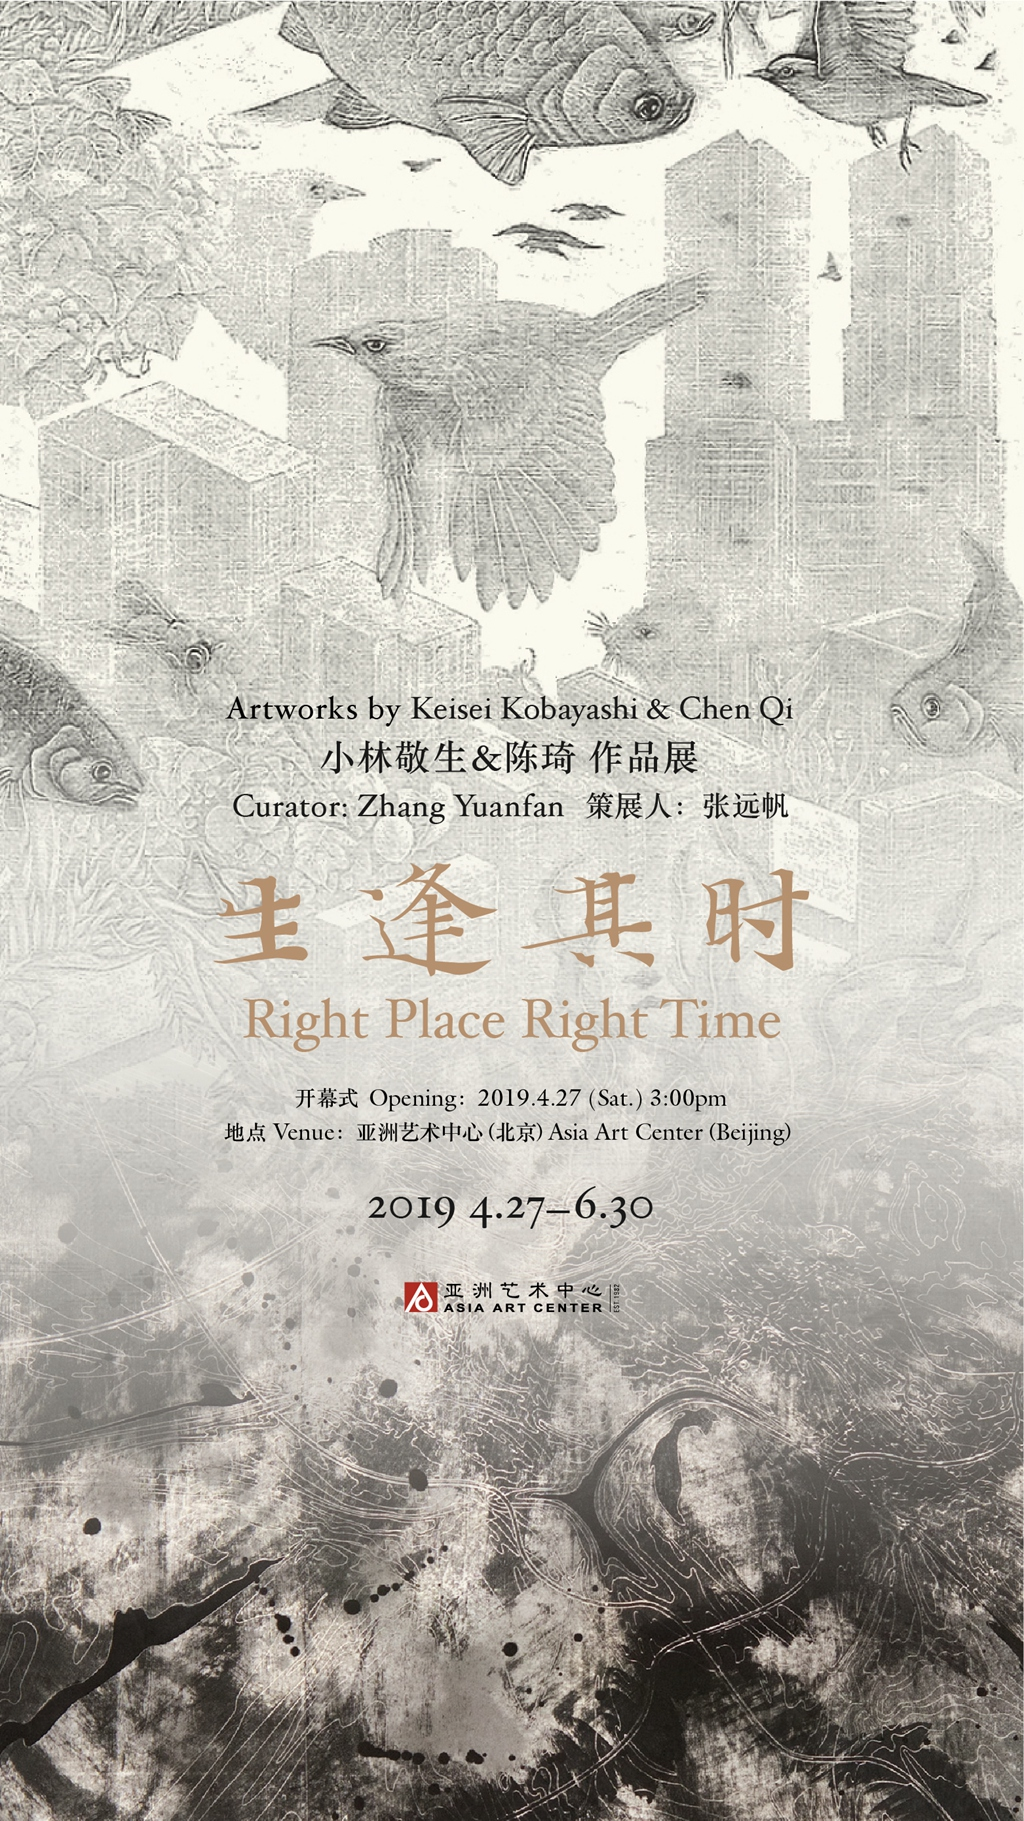 Right Place Right Time—Artworks by Keisei Kobayashi & Chen